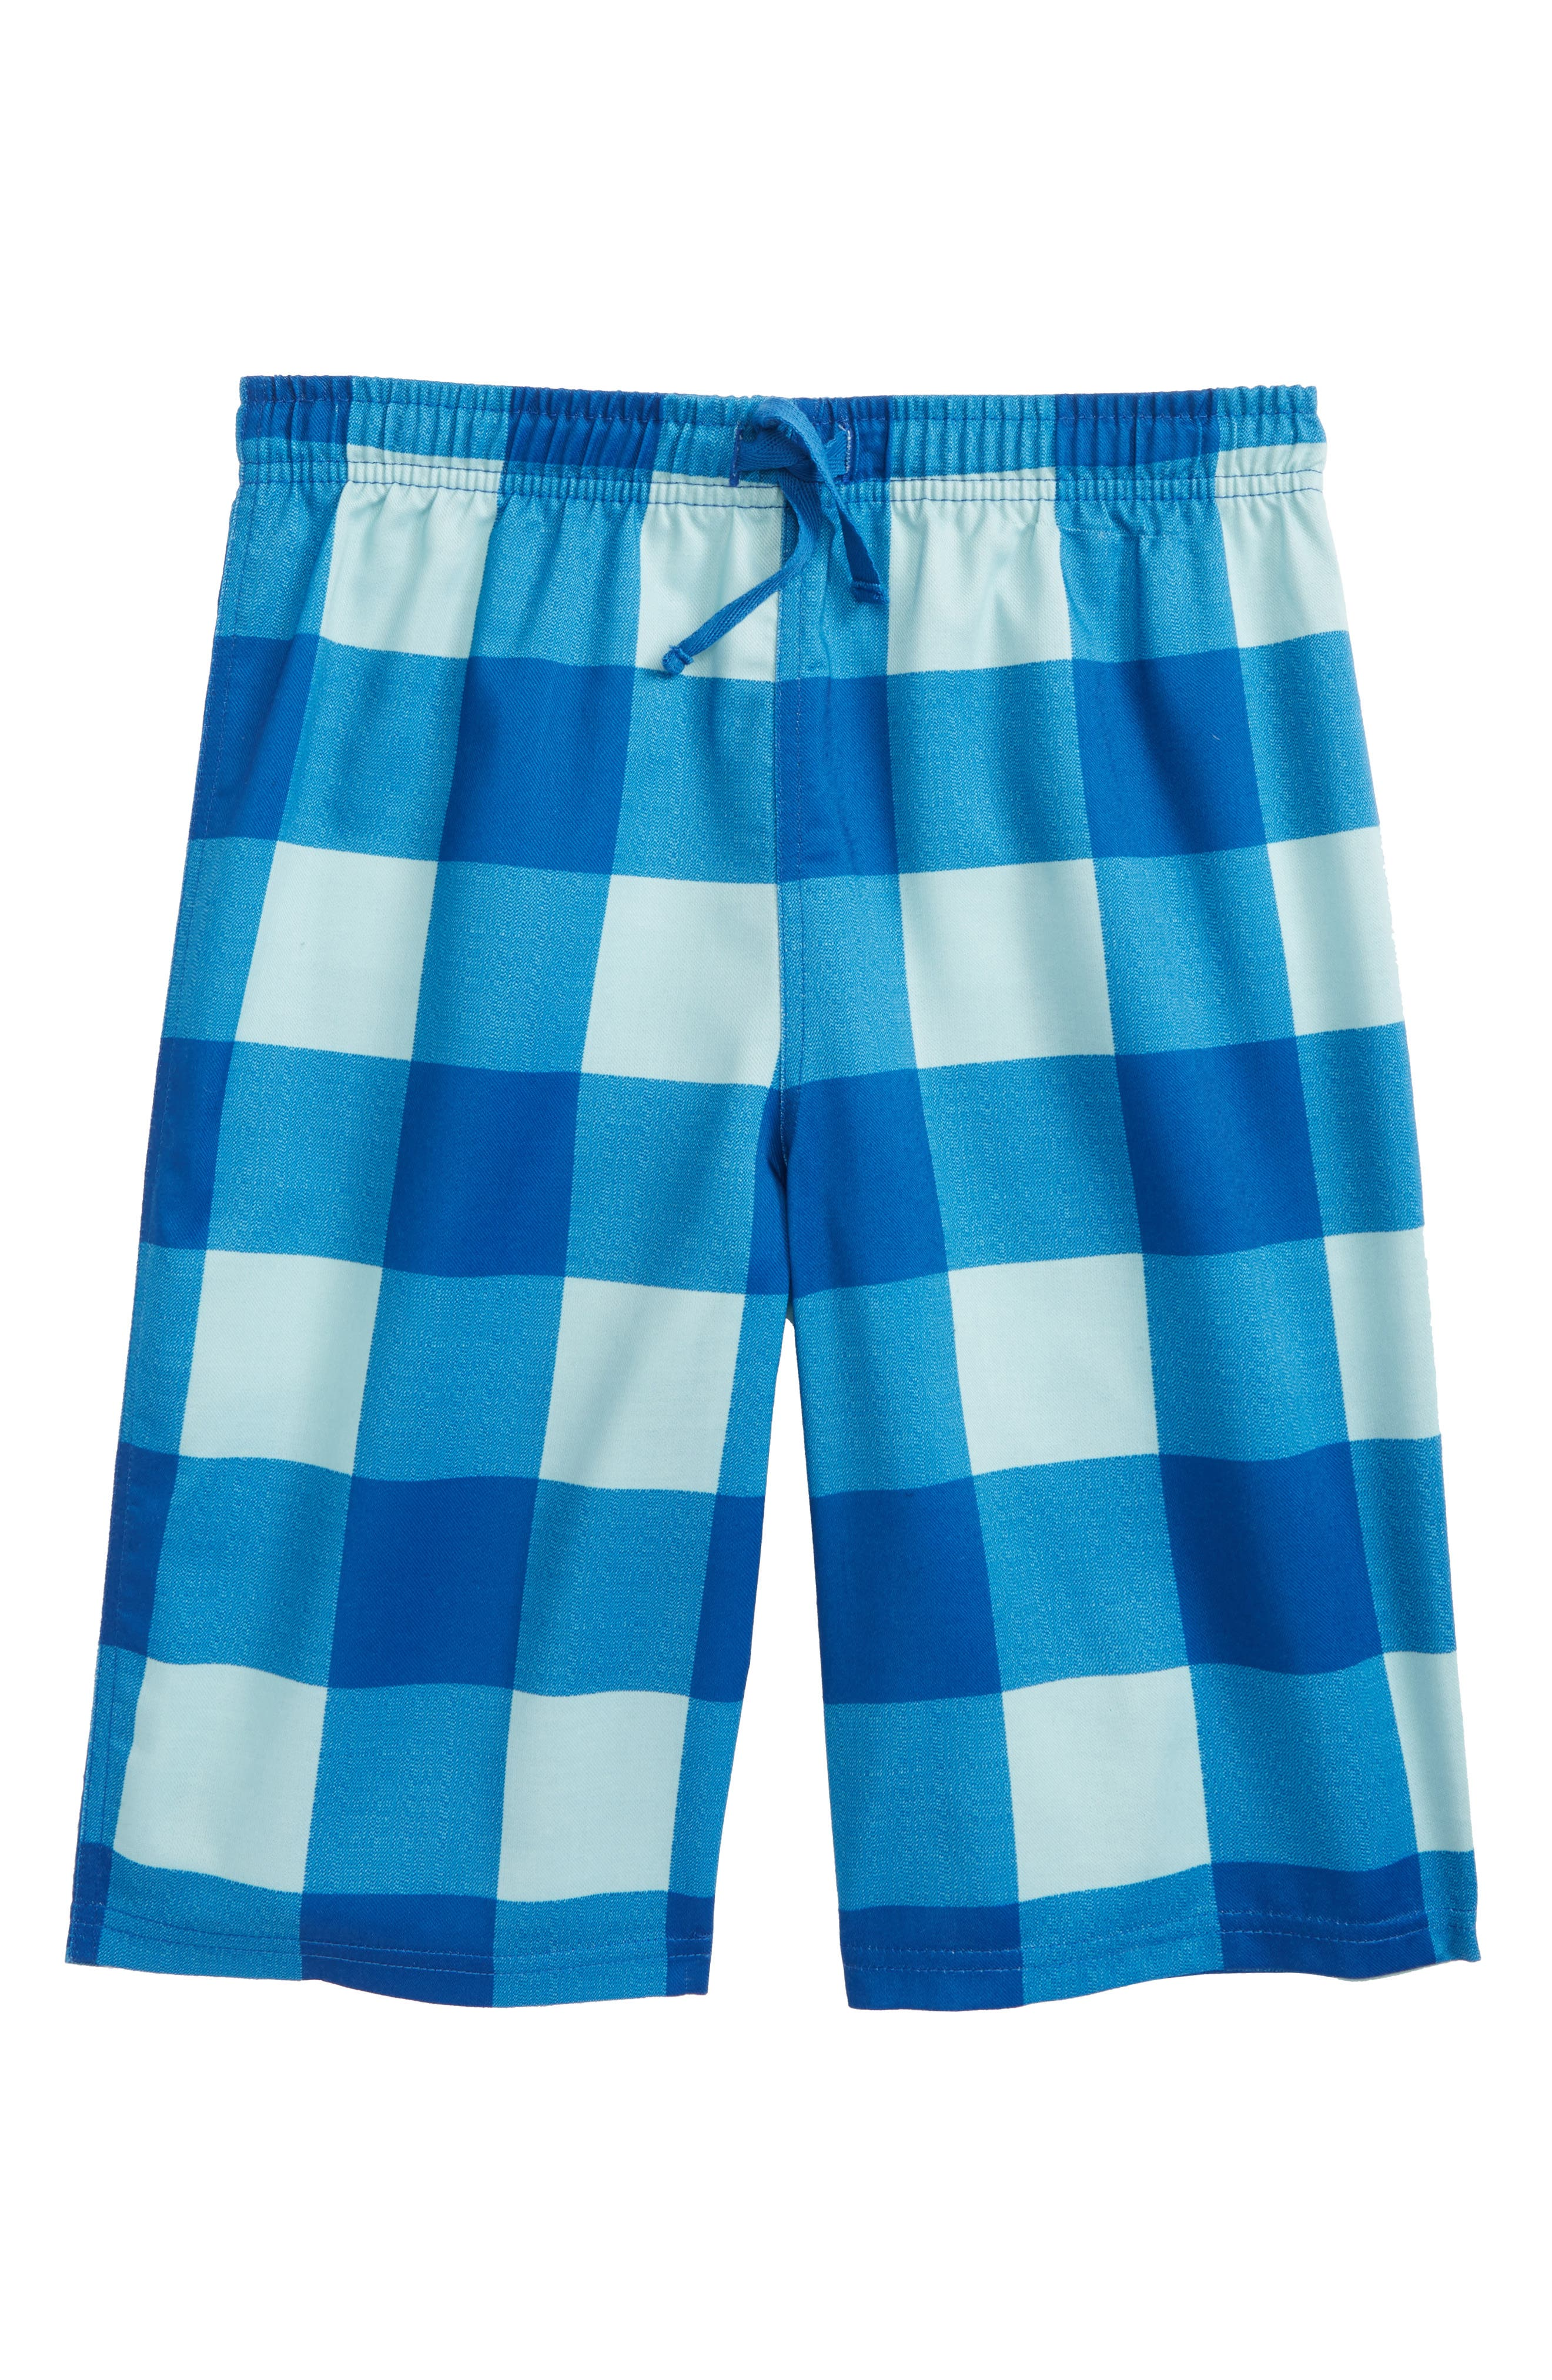 Flannel Shorts,                         Main,                         color, 401